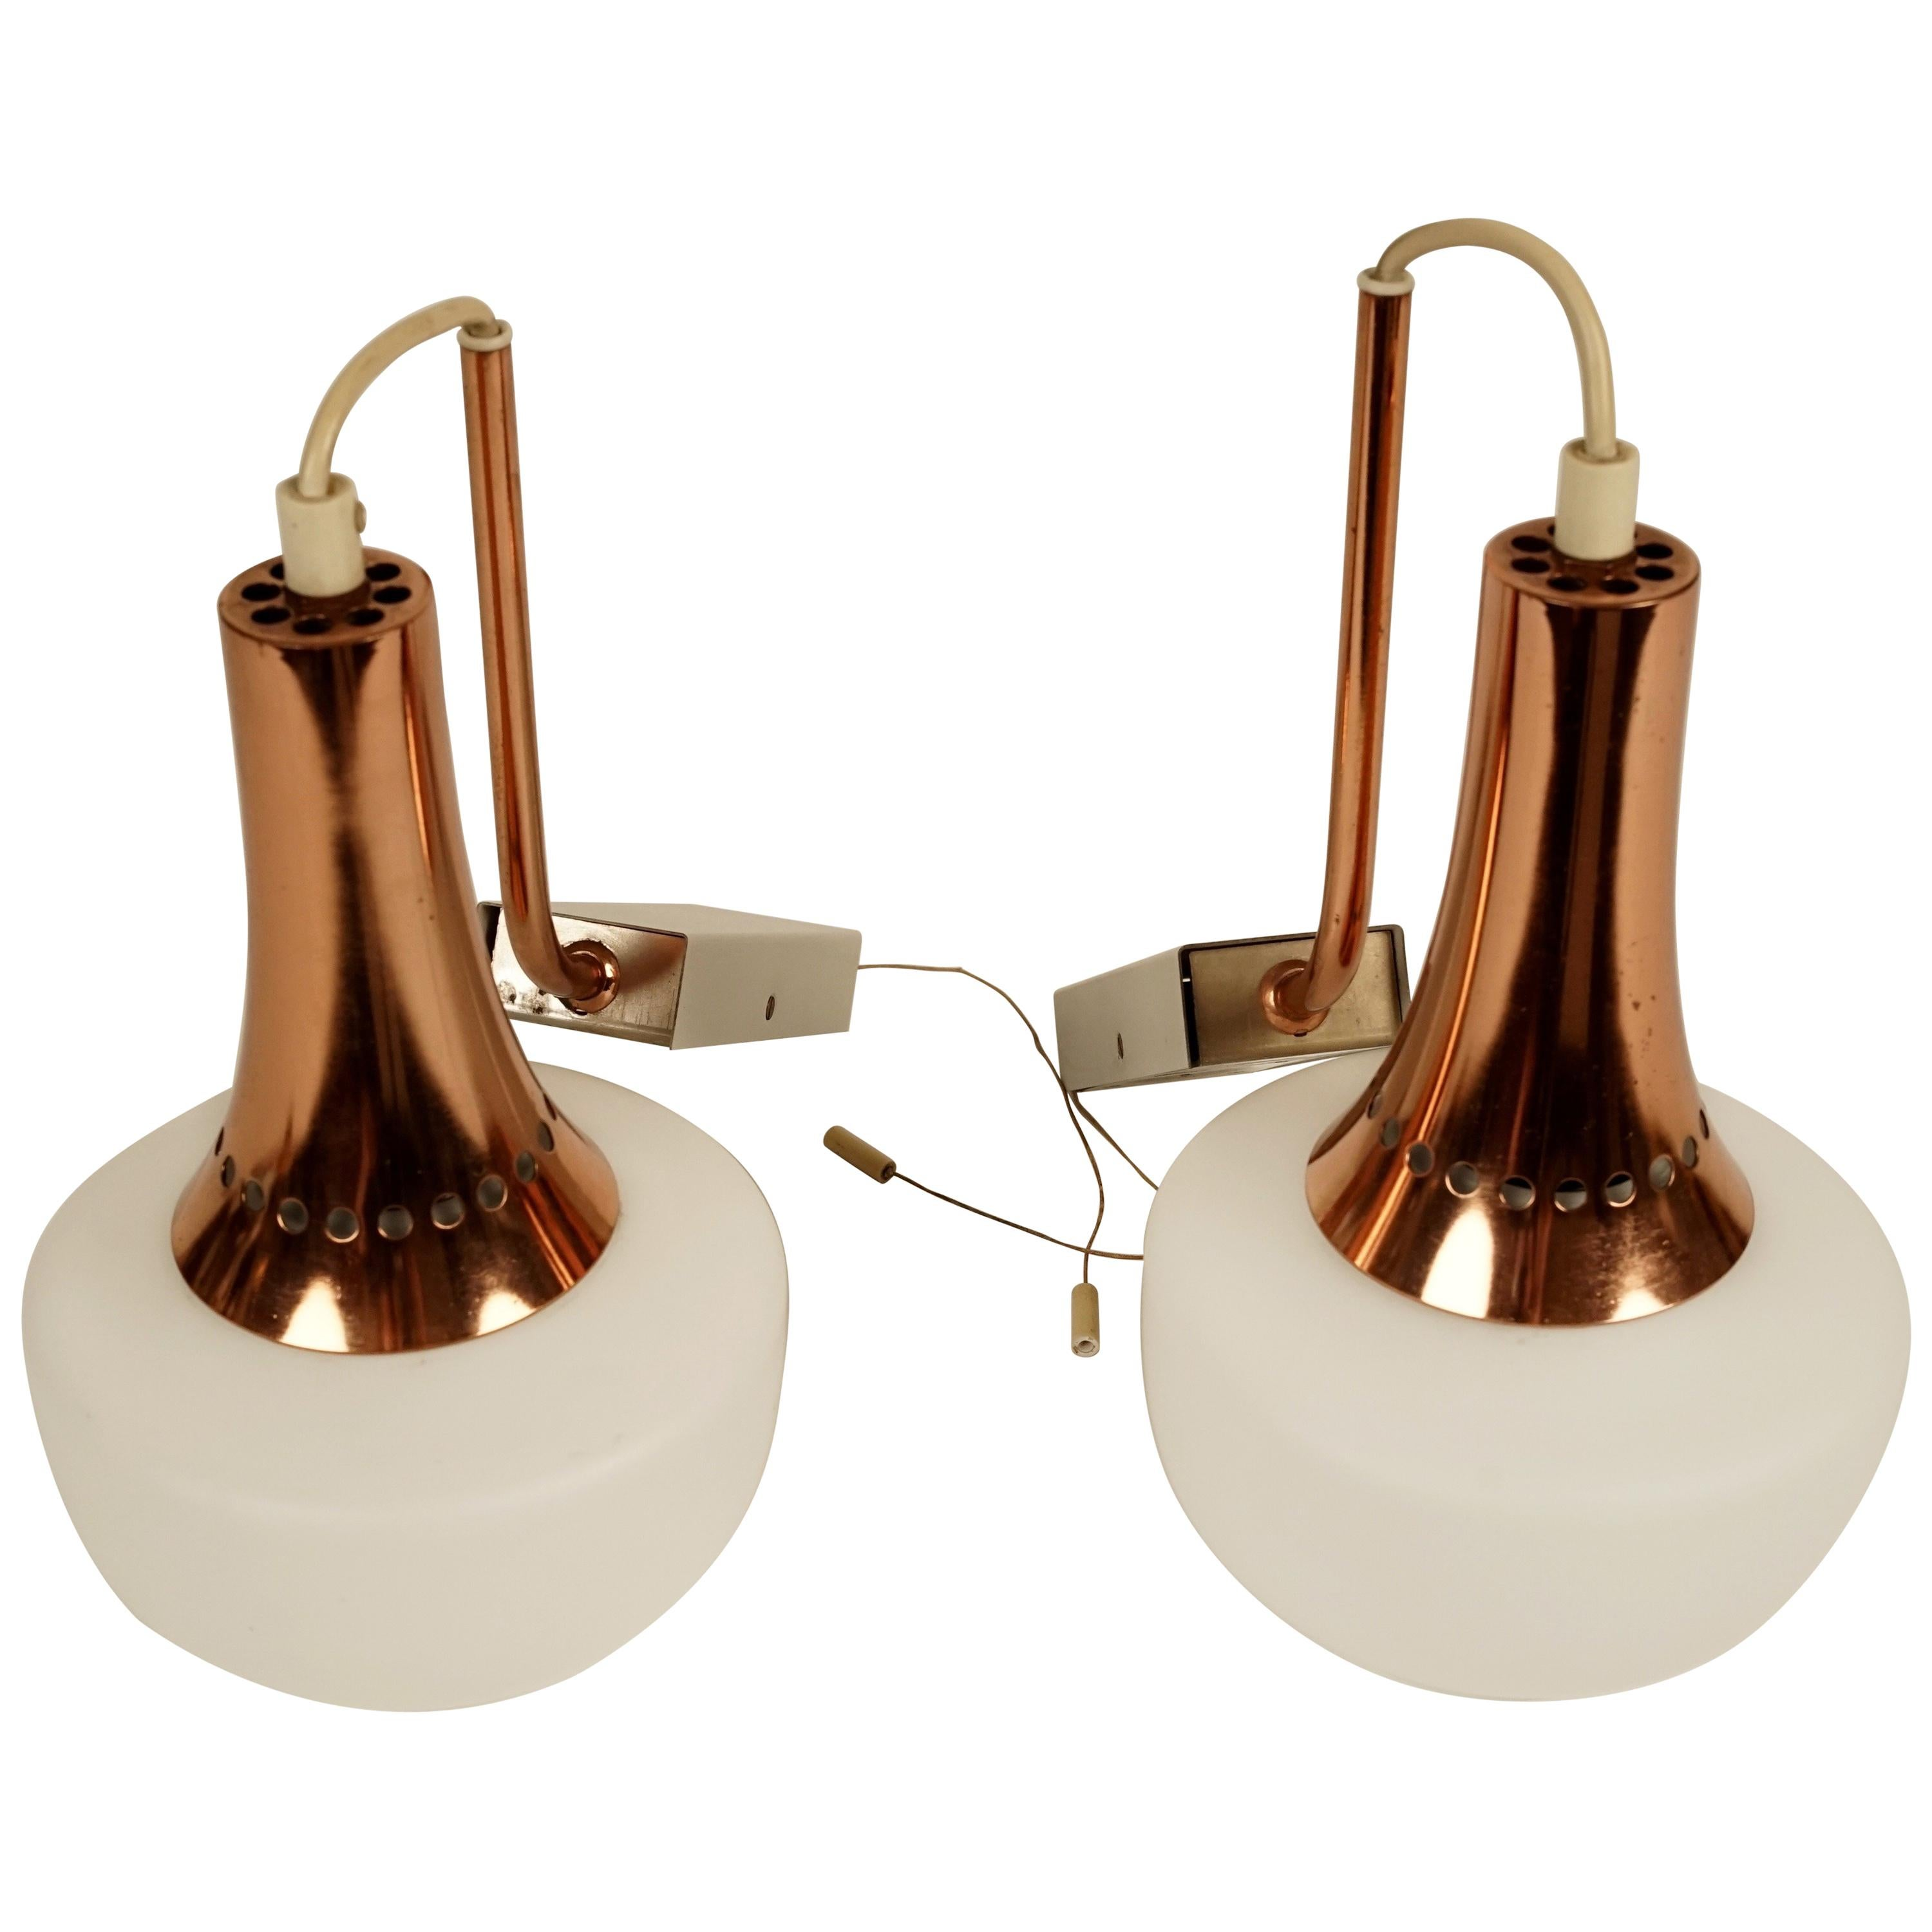 Pair of Hanging Wall Sconces from 1950s